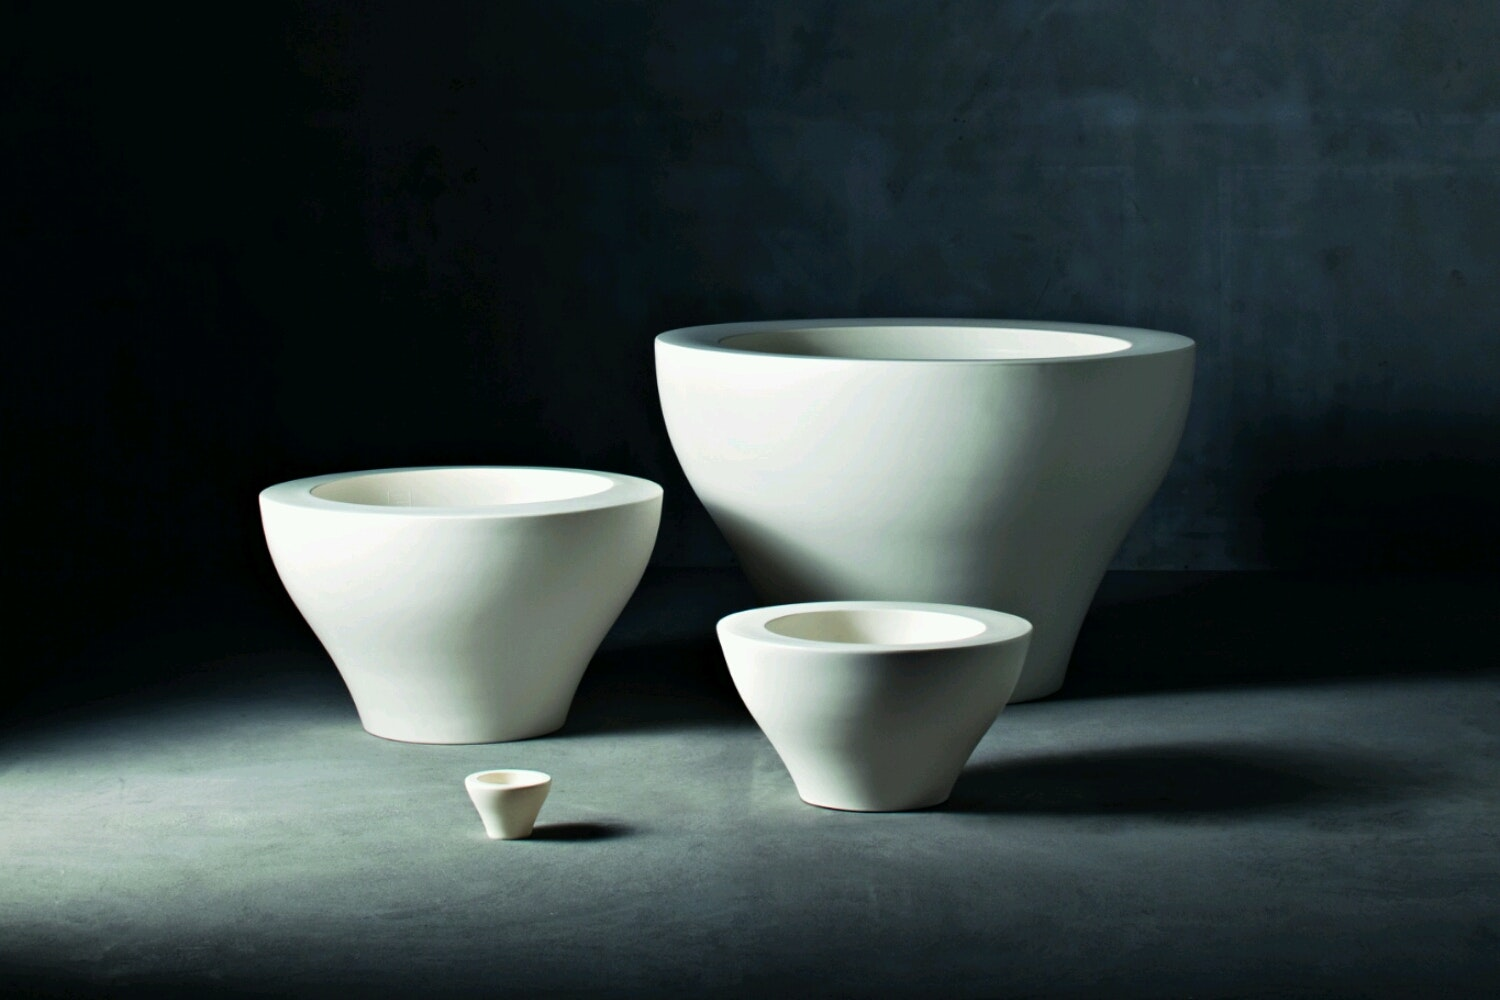 Ming Small Pot by Rodolfo Dordoni for Serralunga